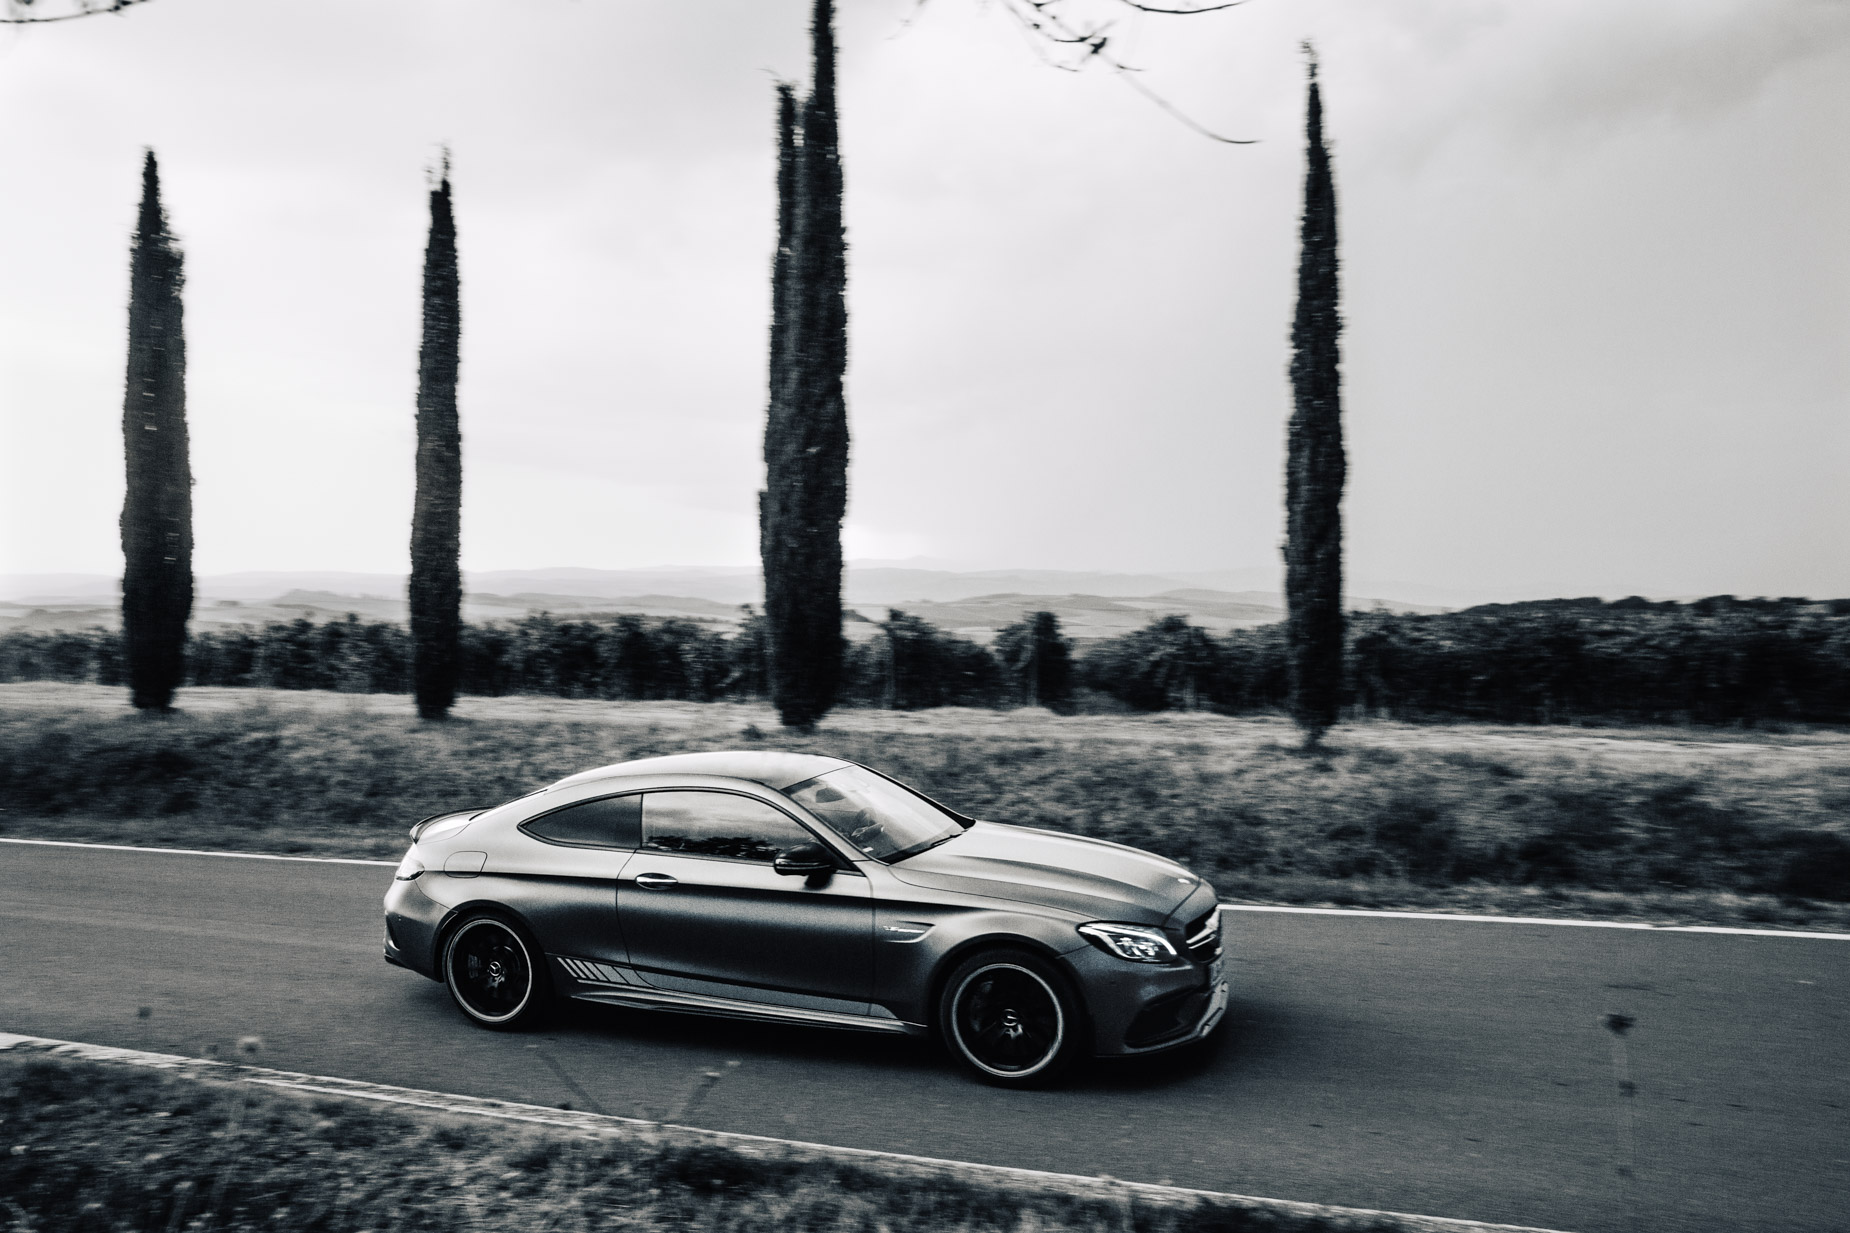 alex_aristei_Michelin_AMG_007